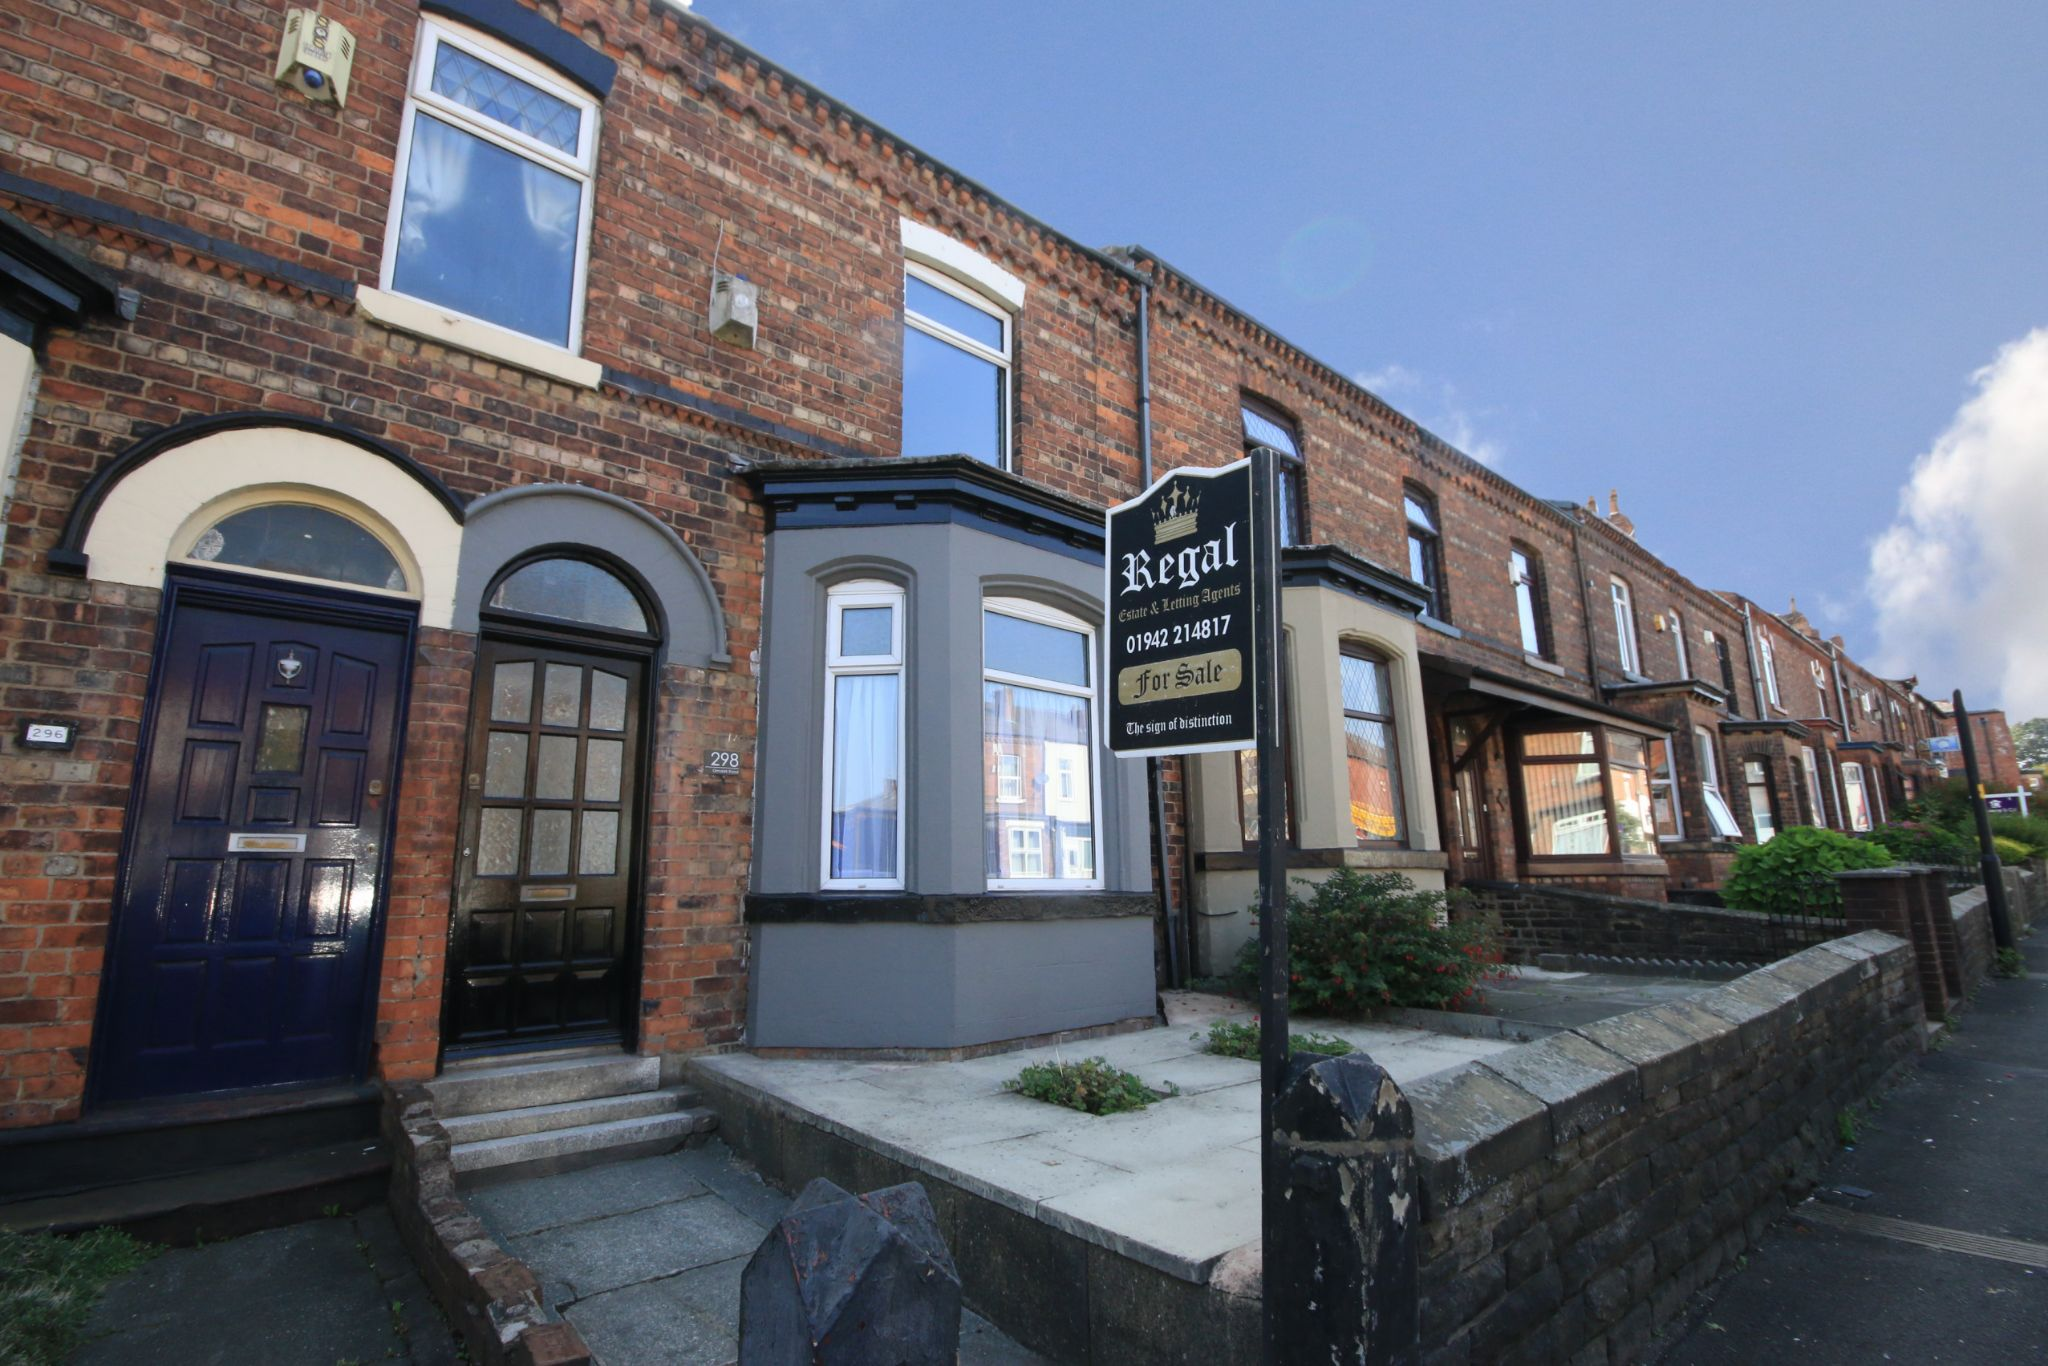 3 bedroom mid terraced house SSTC in Wigan - Photograph 1.